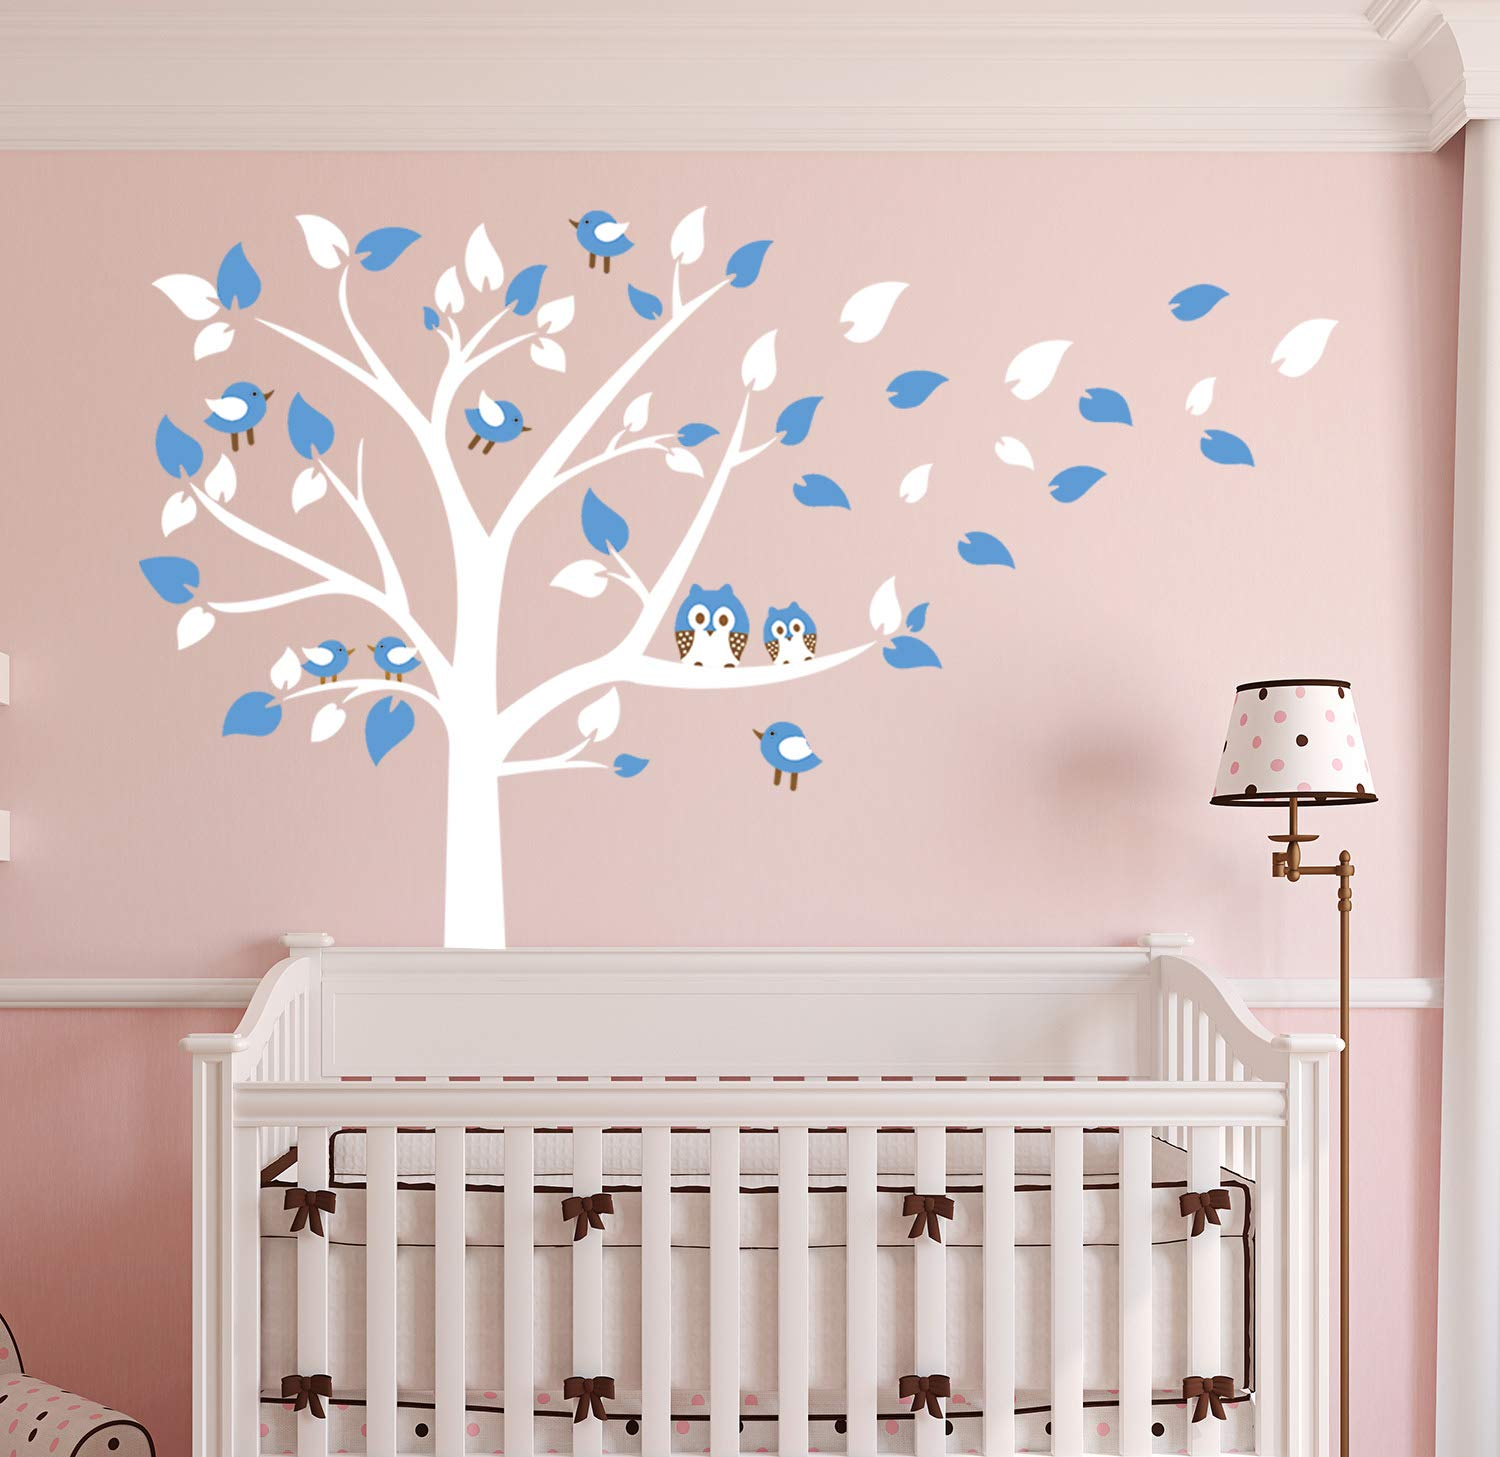 AliQing Nursery Wall Decals White Tree Wall Decals Owls Birds Wall Stickers Vinyl Mural Art for Baby Nursery Kids Room Decoration (Blue)